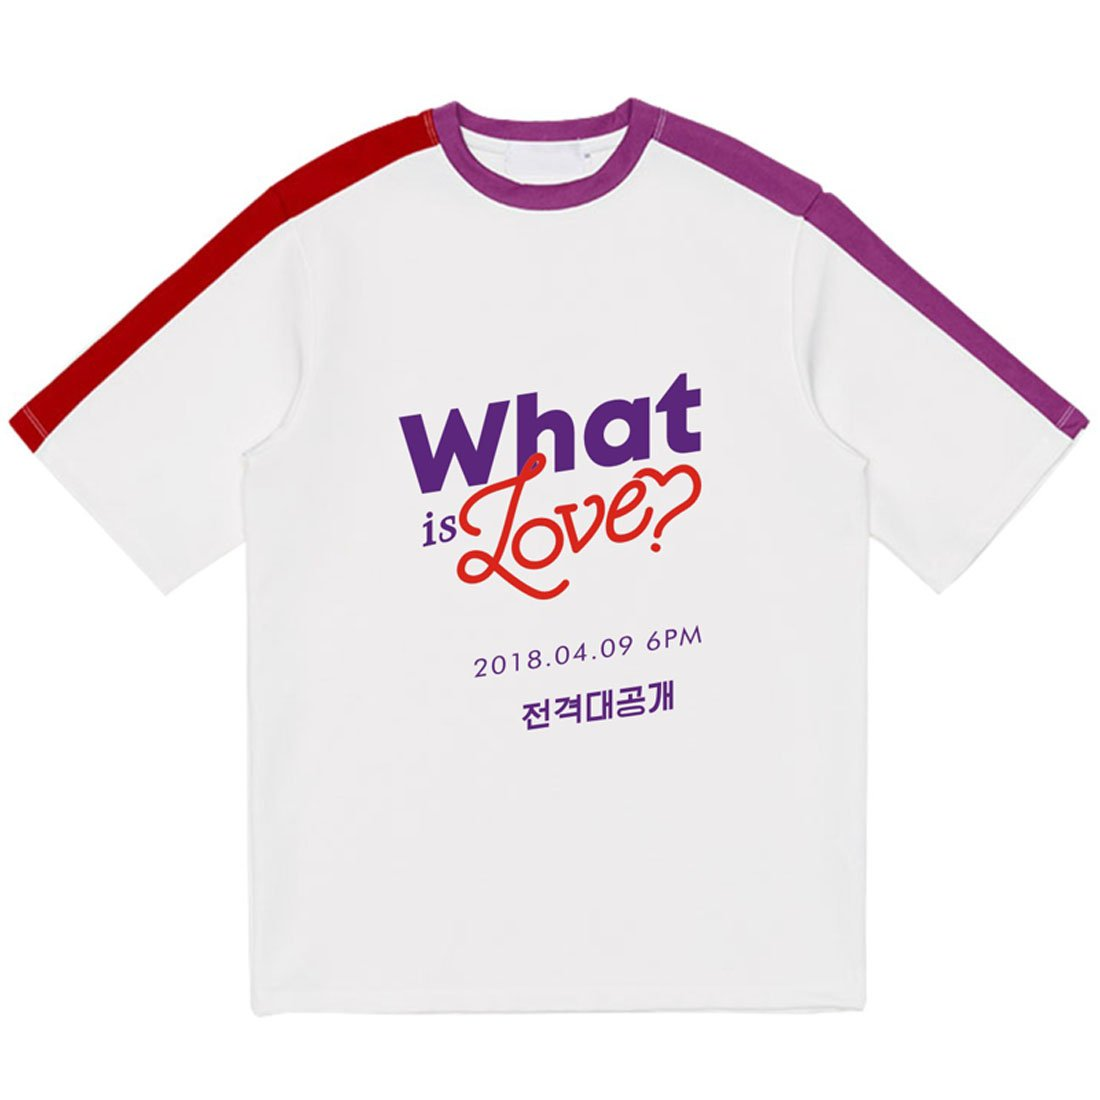 ALLDECOR Kpop Twice What is Love Fanmade Short Sleeve T-Shirt Unise Loose Tee